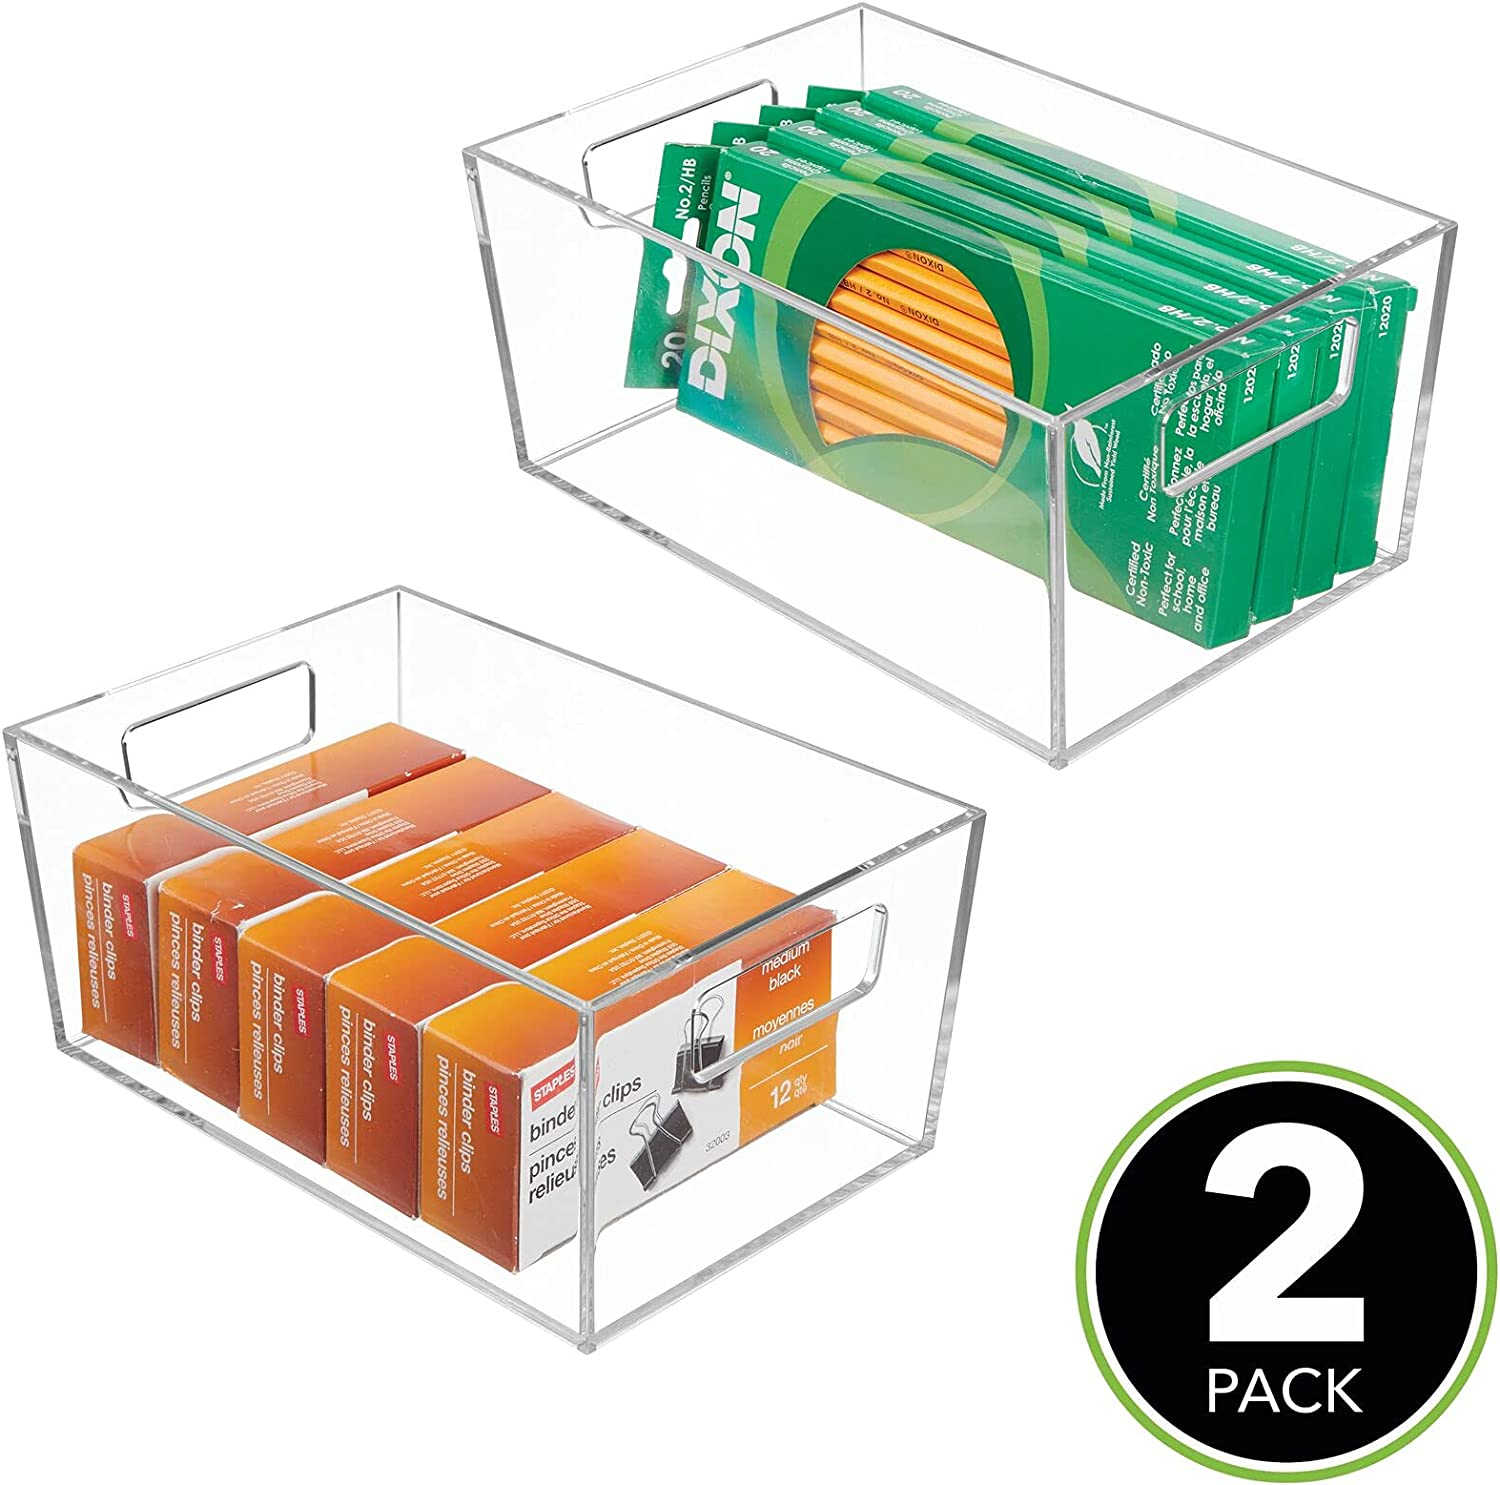 mDesign Rectangular Plastic Office Supplies Storage Organizer Bin with Handles for Paper Pads, Pens, Pencils, Dry Erase Markers, Highlighters, Sticky Notes, Mailing Labels - Small, 2 Pack - Clear: Home & Kitchen